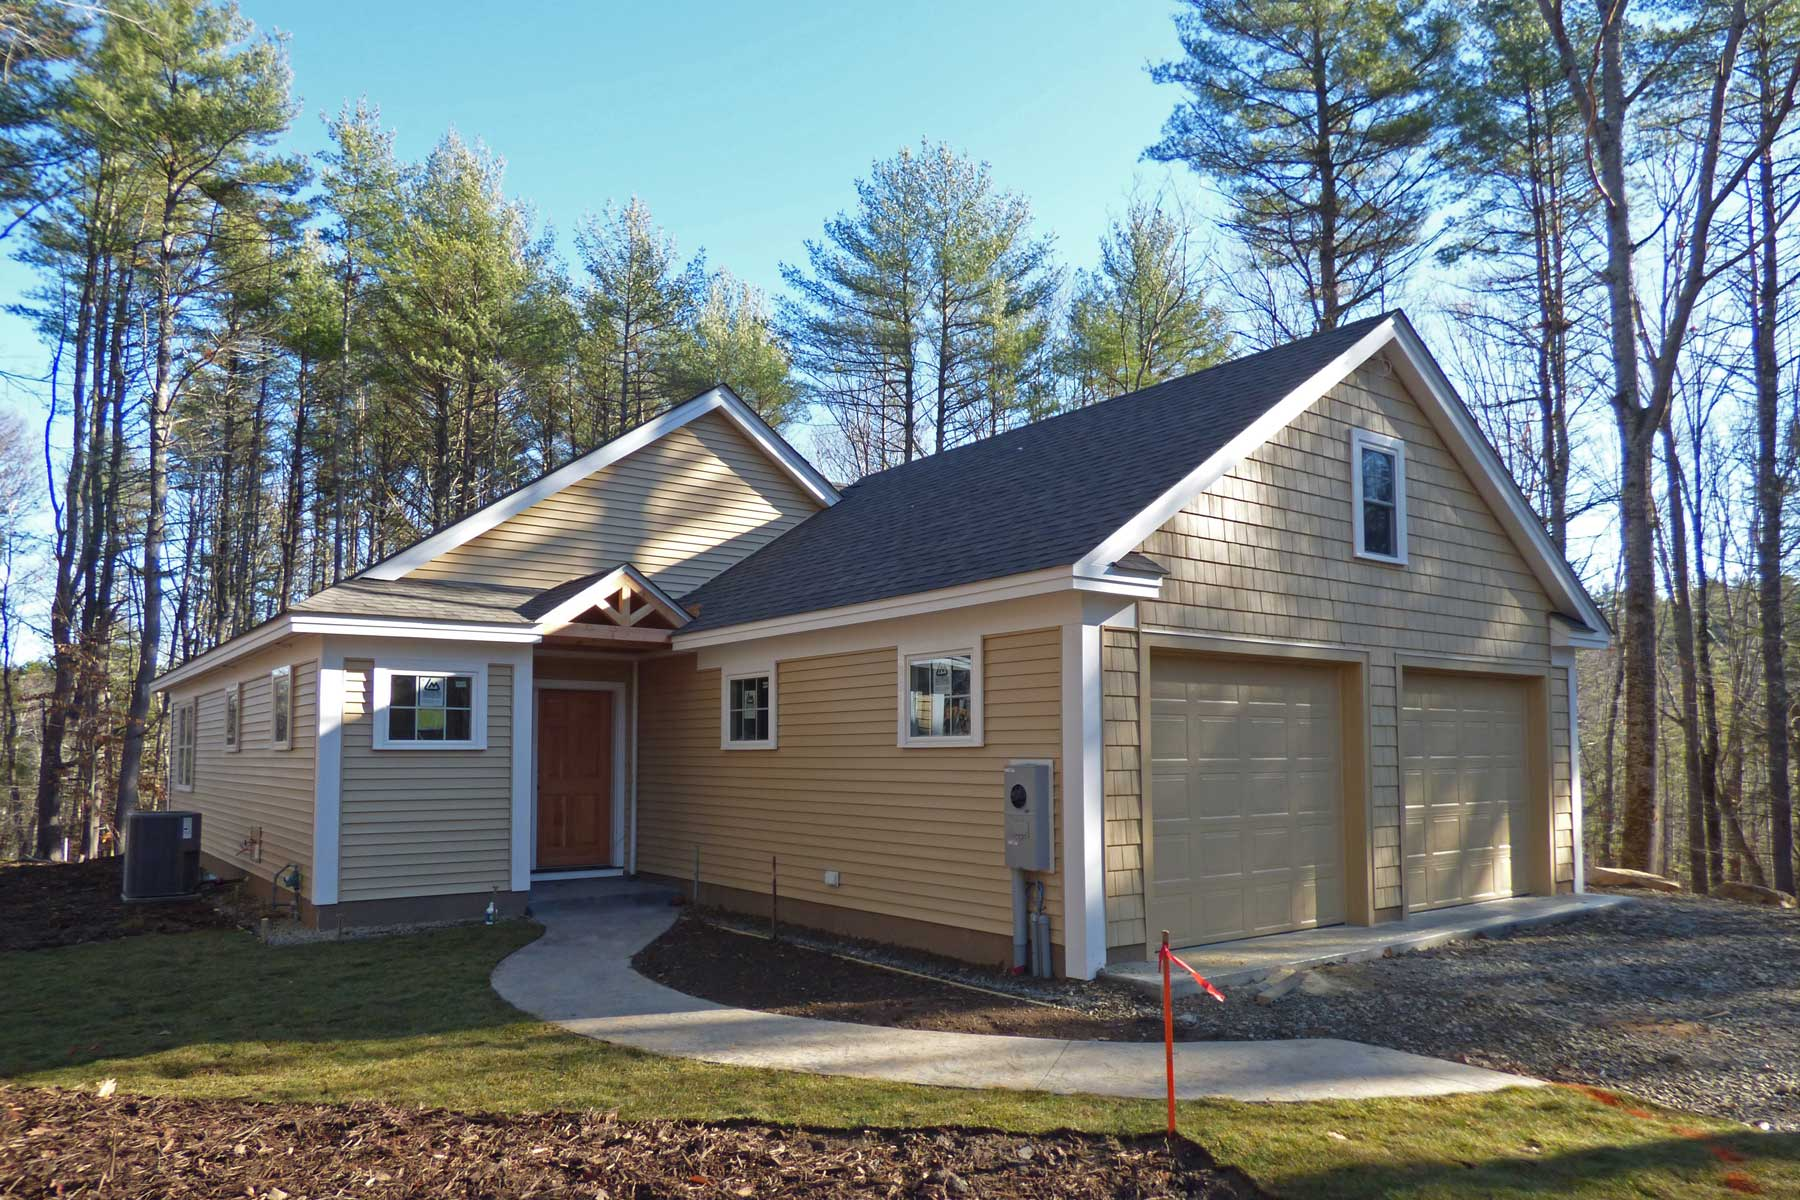 Single Family Home for Sale at Recently Completed Home in Lewis Farm 8 Coopers Way Kittery, Maine, 03904 United States